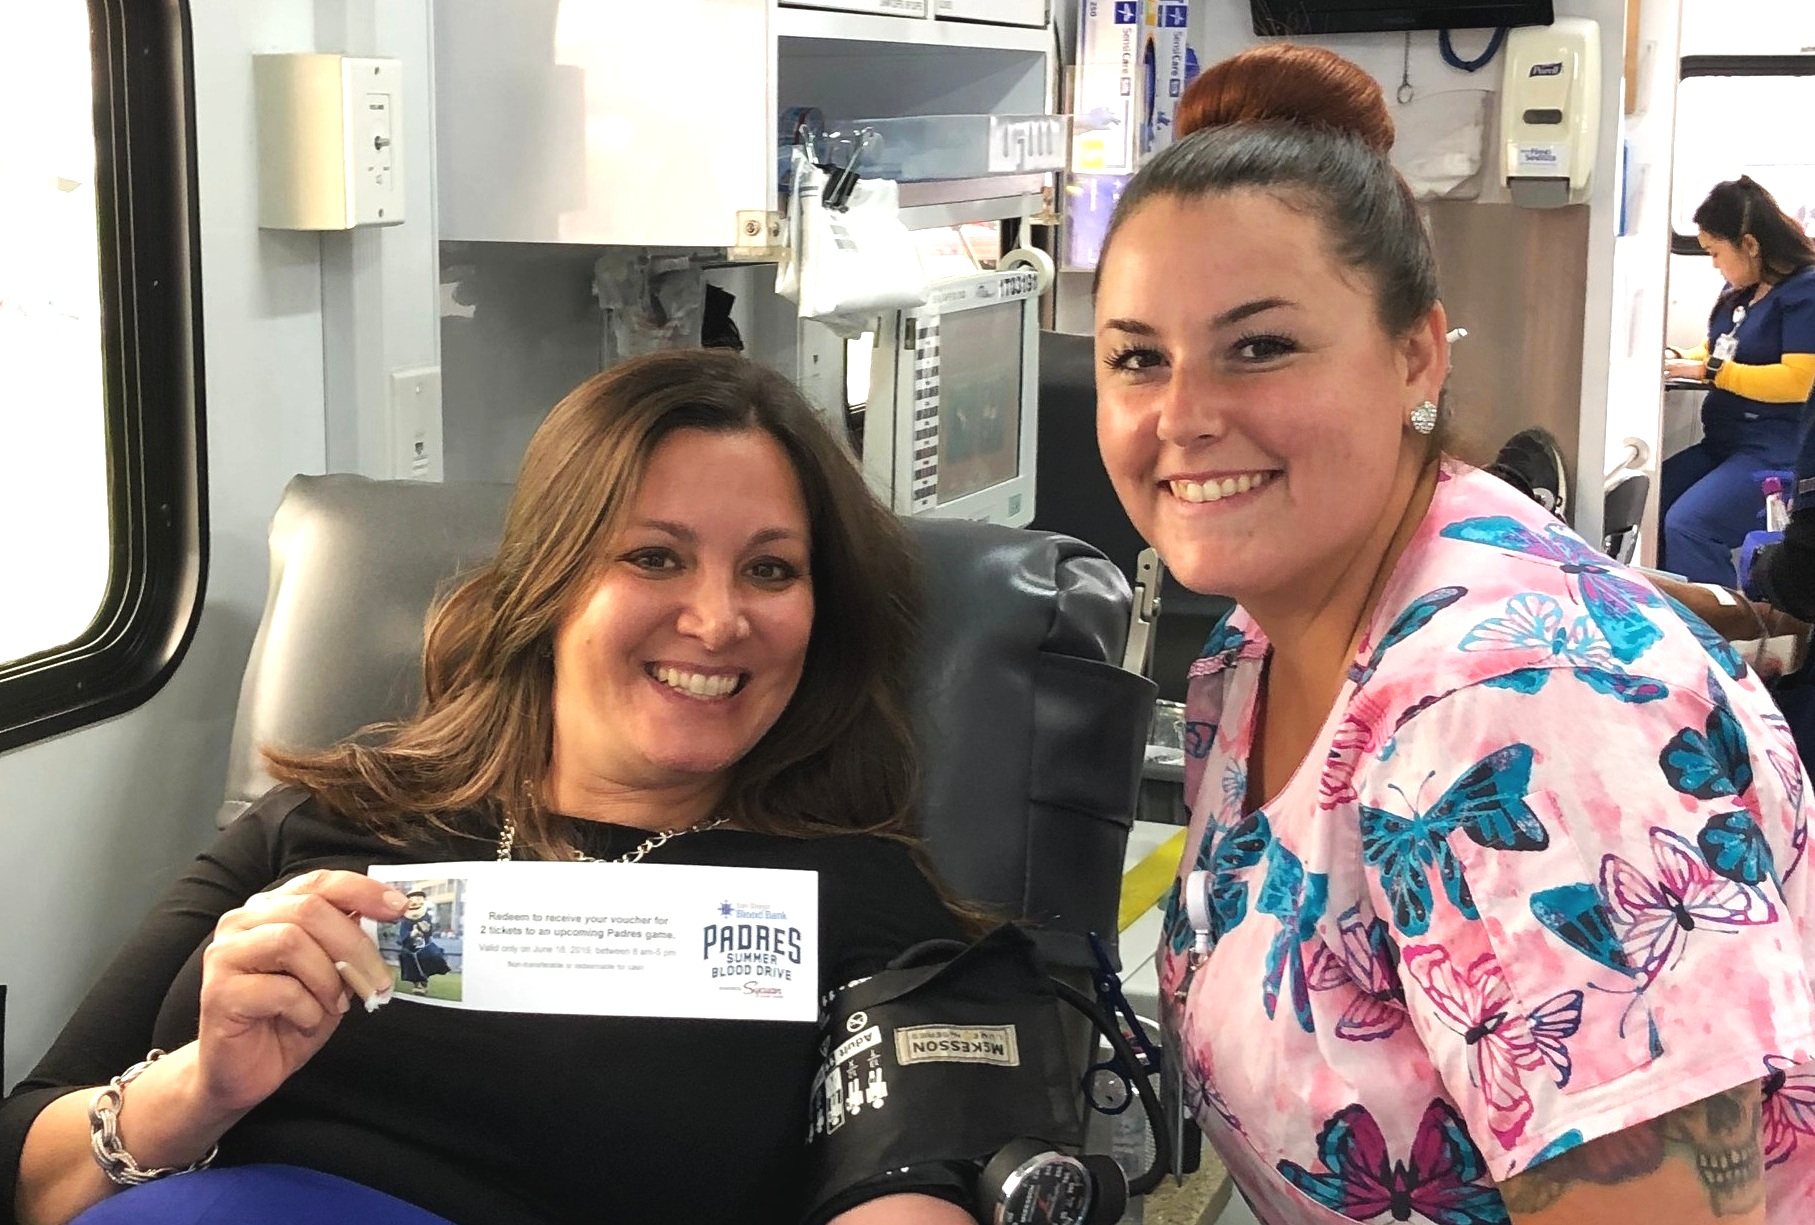 San Diego Blood Bank's Vice President of Development Sherry Serio smiles with her phlebotomist, Kimmy! Thank you, Sherry, for saving lives!